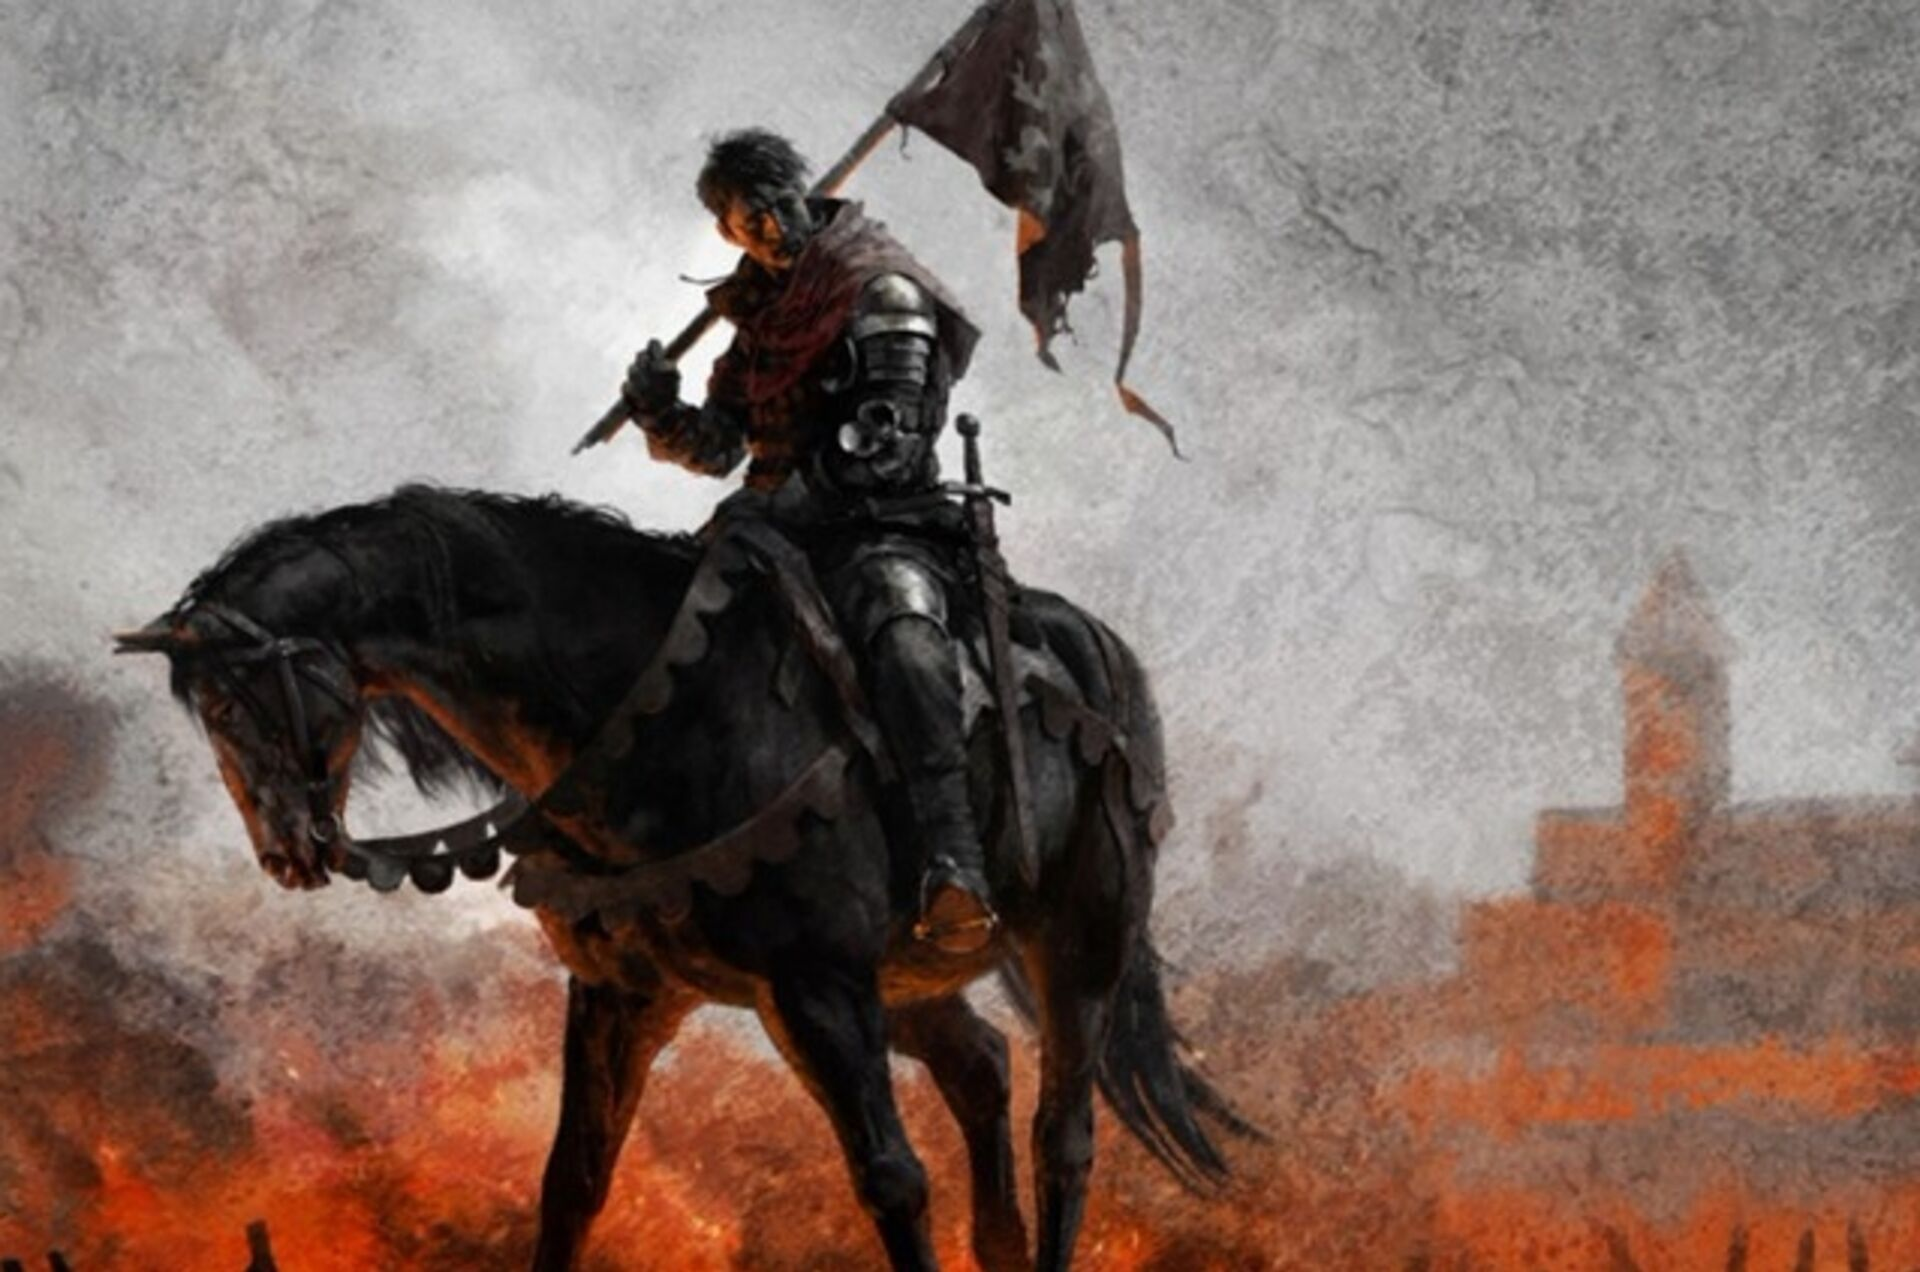 Kingdom Come: Deliverance review - history is a double-edged